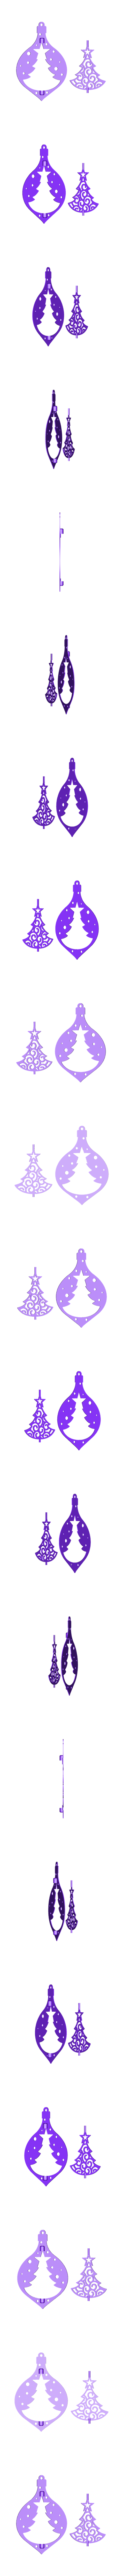 tree.stl Download free STL file Christmas ornament • 3D printing model, Toolmoon